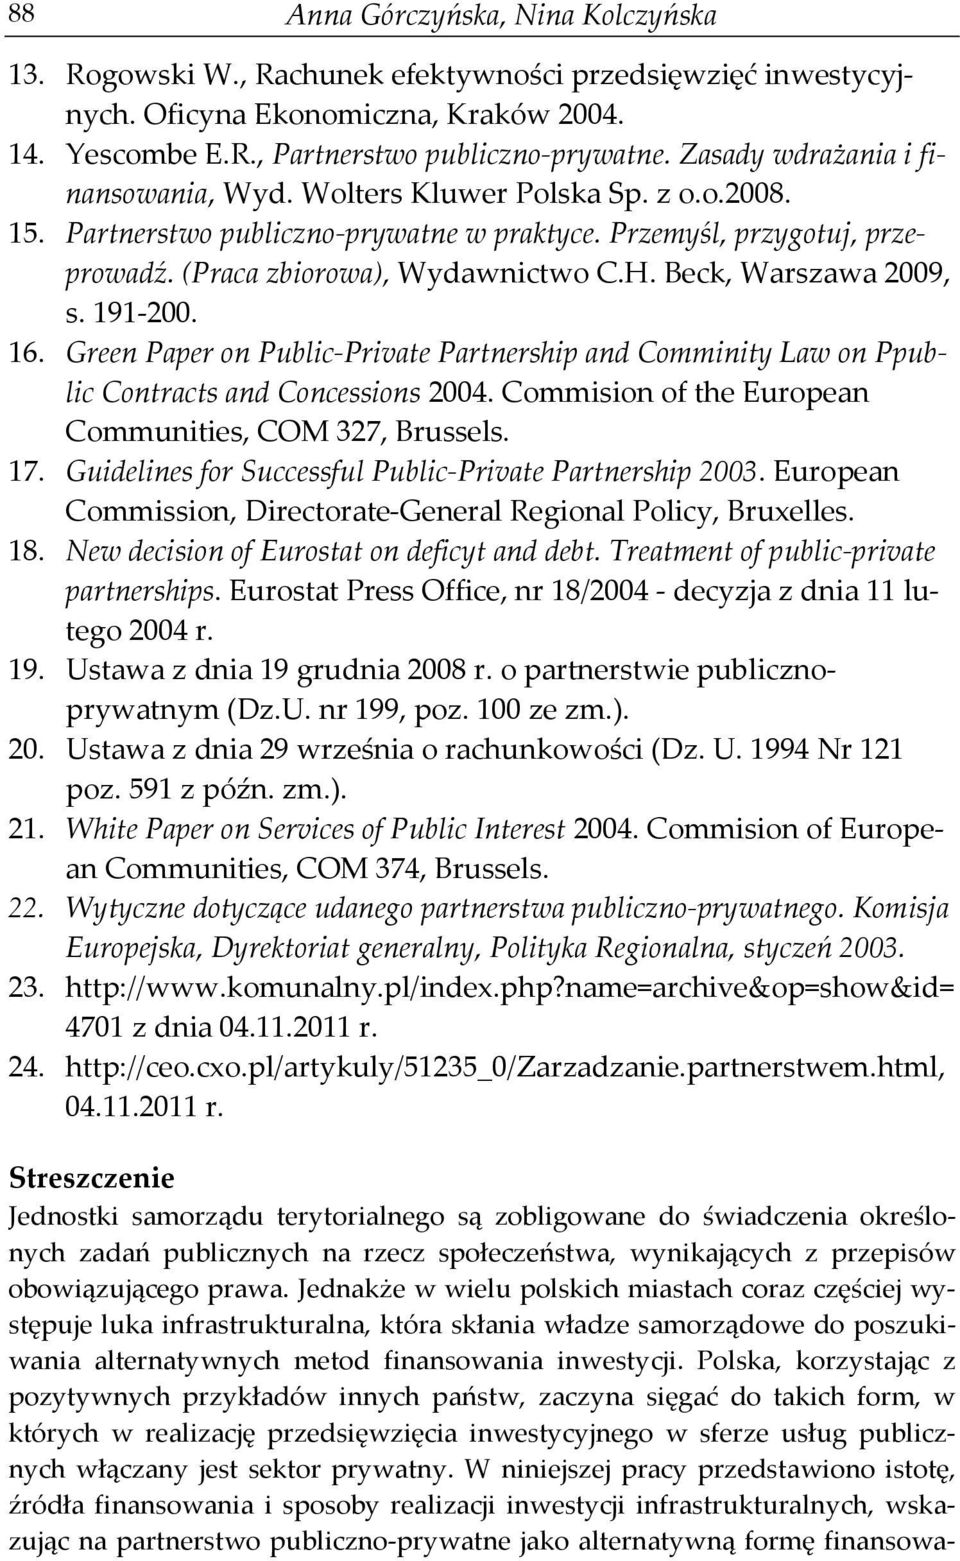 Beck, Warszawa 2009, s. 191-200. 16. Green Paper on Public-Private Partnership and Comminity Law on Ppublic Contracts and Concessions 2004. Commision of the European Communities, COM 327, Brussels.